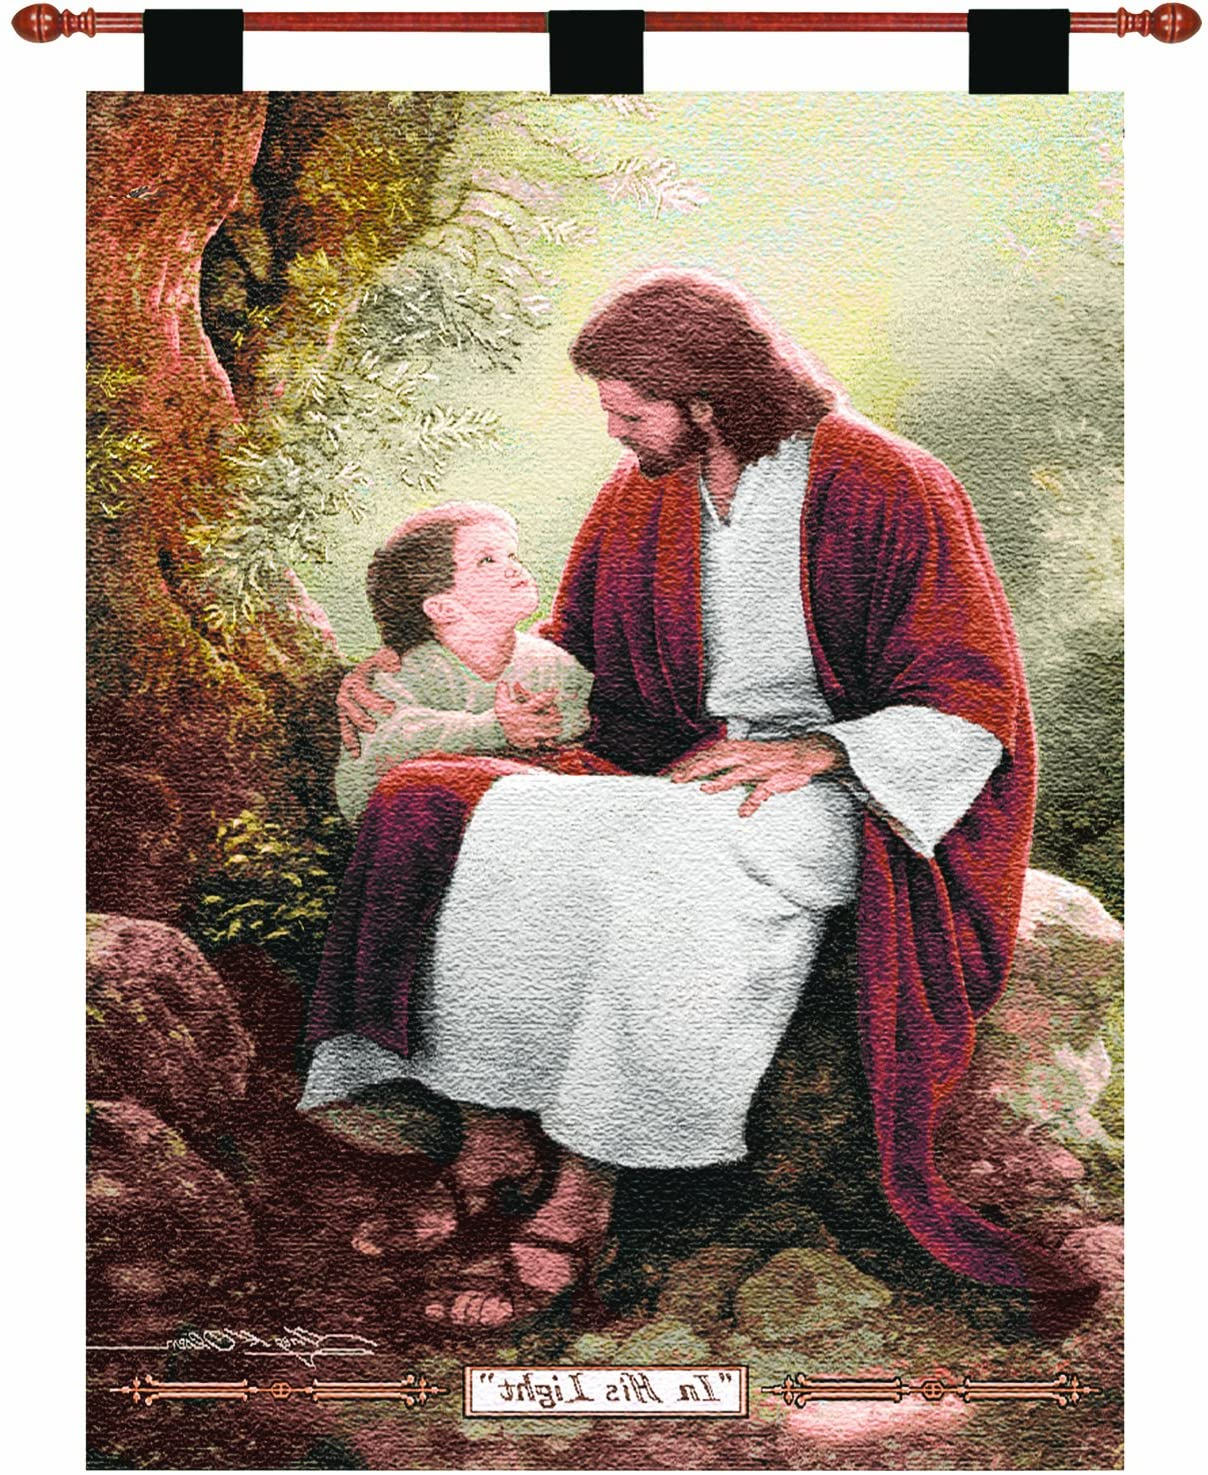 """Preferred Manual Inspirational Collection 26 X 36 Inch Christian Hanging Multicolor Woven Wall Art Tapestry Décor With Finial Rod, """"in His Light""""greg Olsen, Pertaining To Blended Fabric Autumn Tranquility Verse Wall Hangings (View 10 of 20)"""